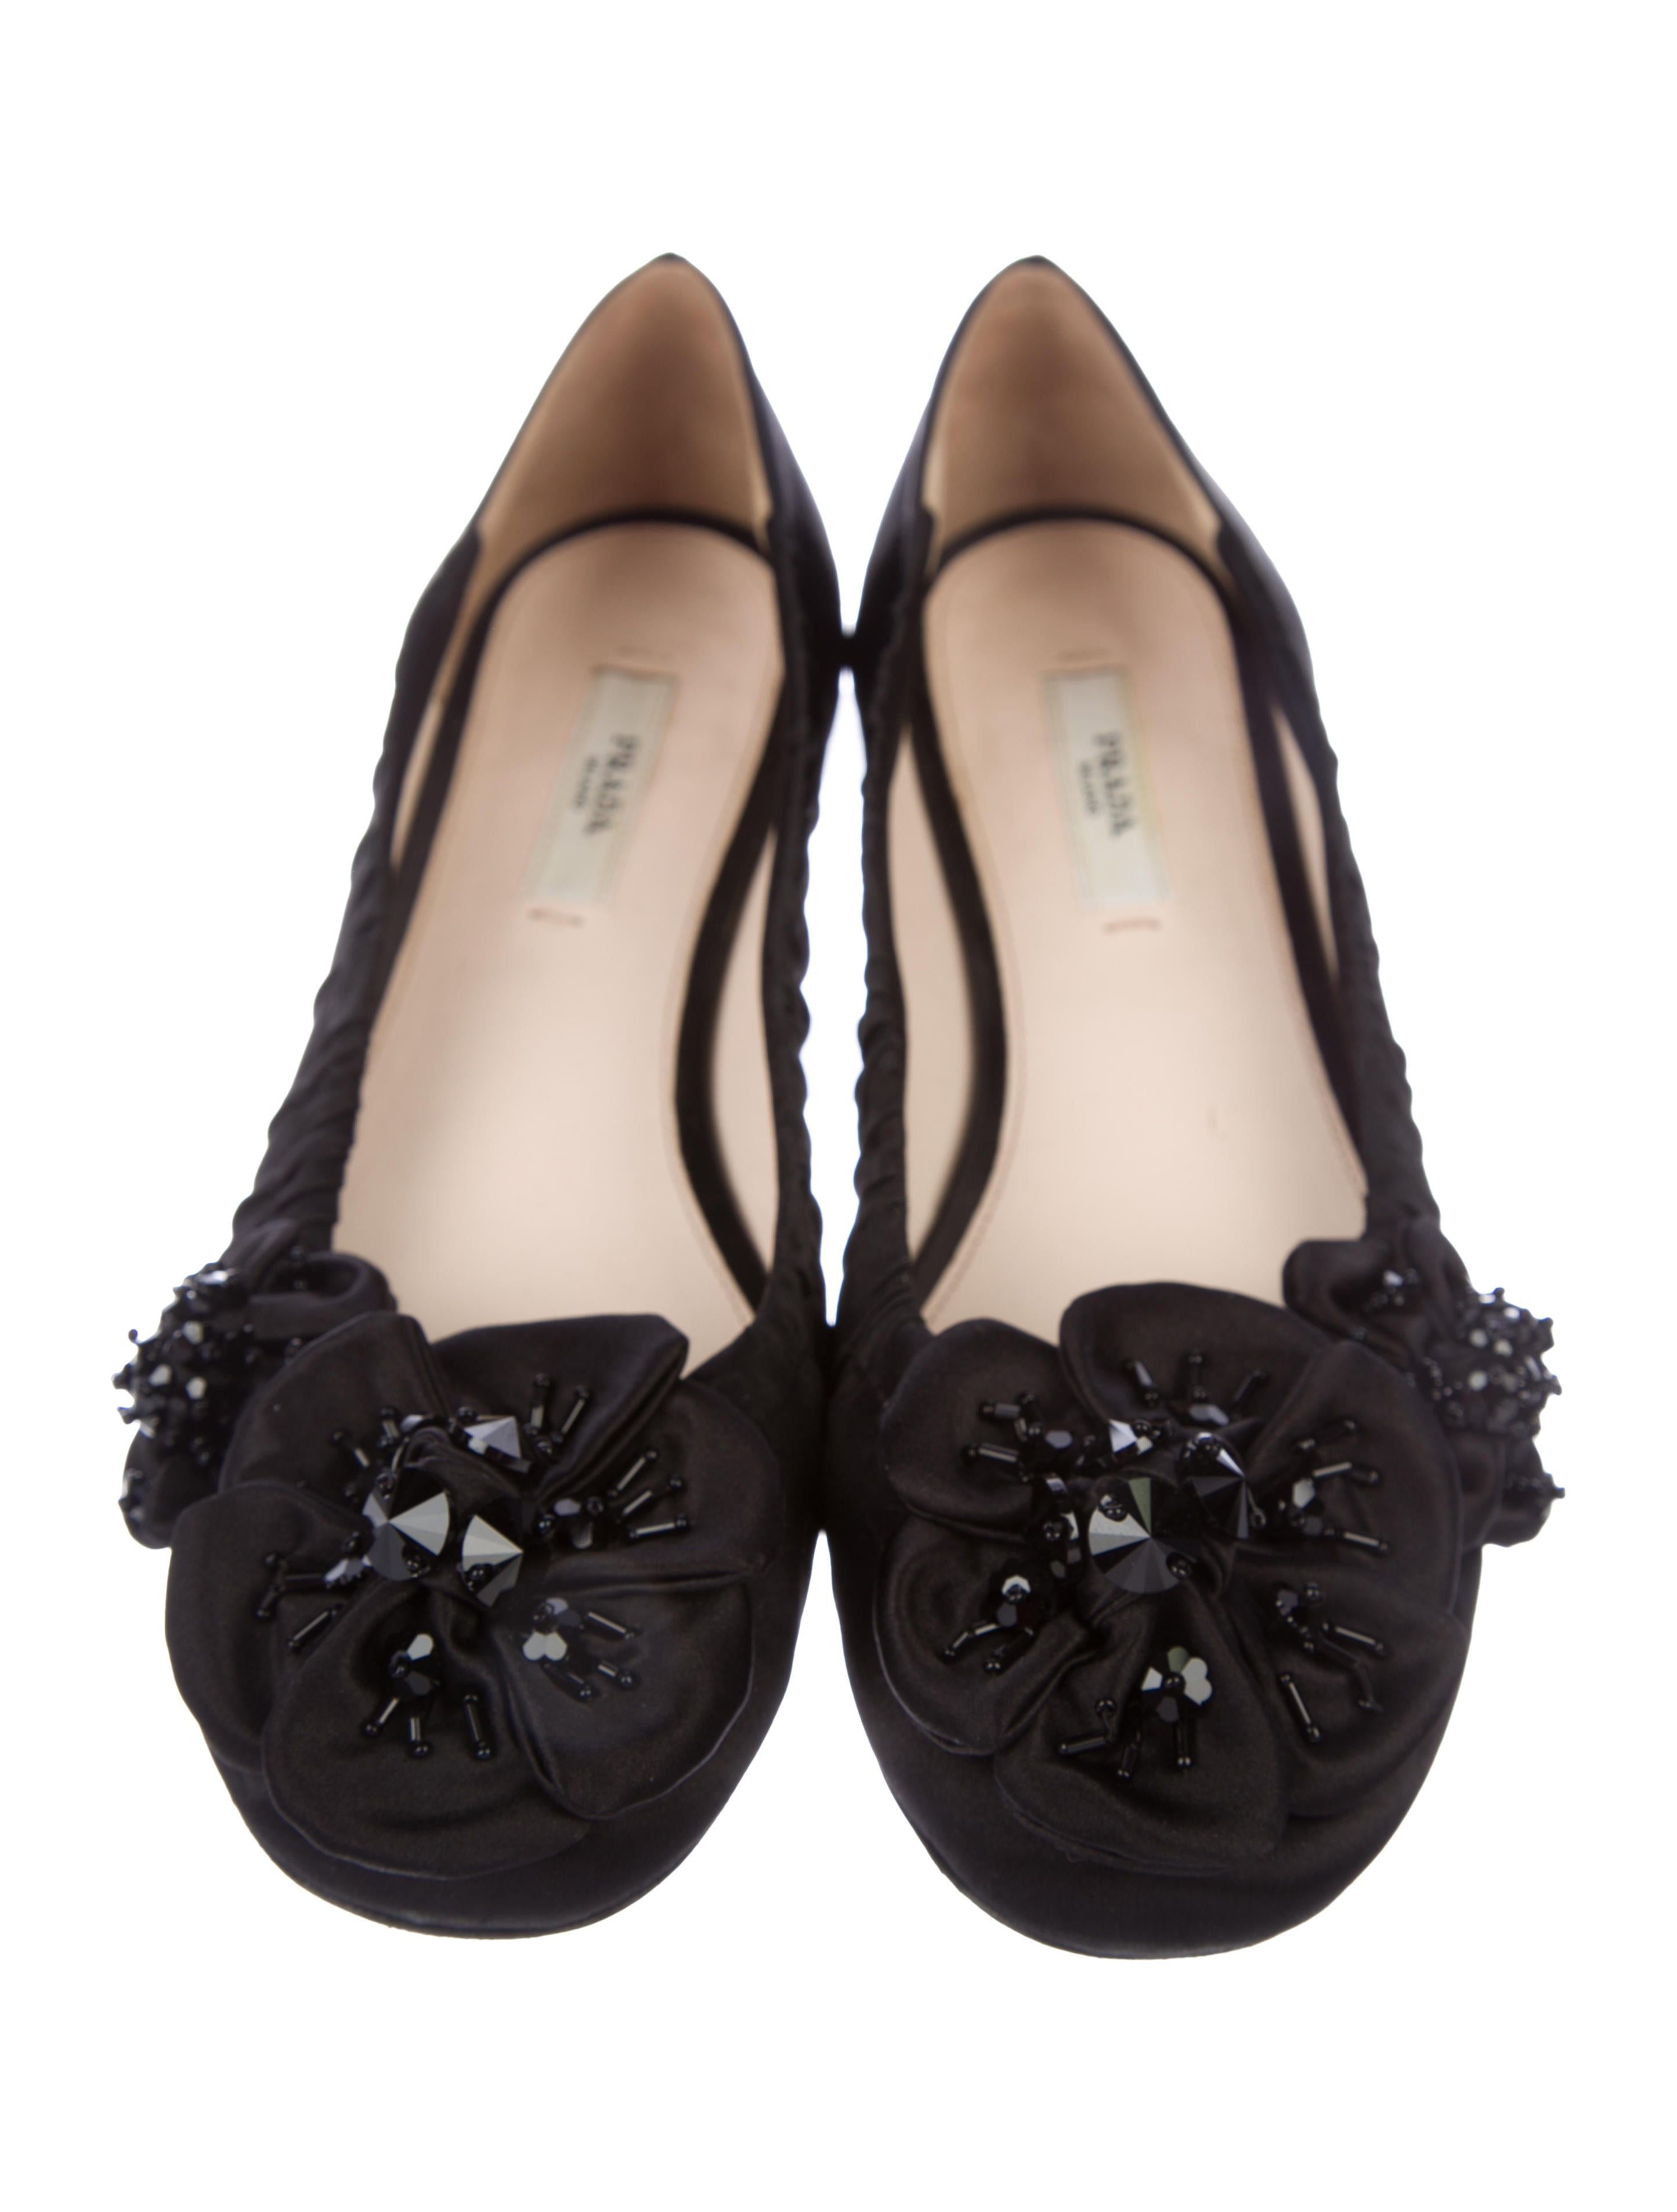 cheap 2015 free shipping 2015 Prada Satin Round-Toe Flats sale fashionable quality from china wholesale free shipping limited edition O4Sab1d8F